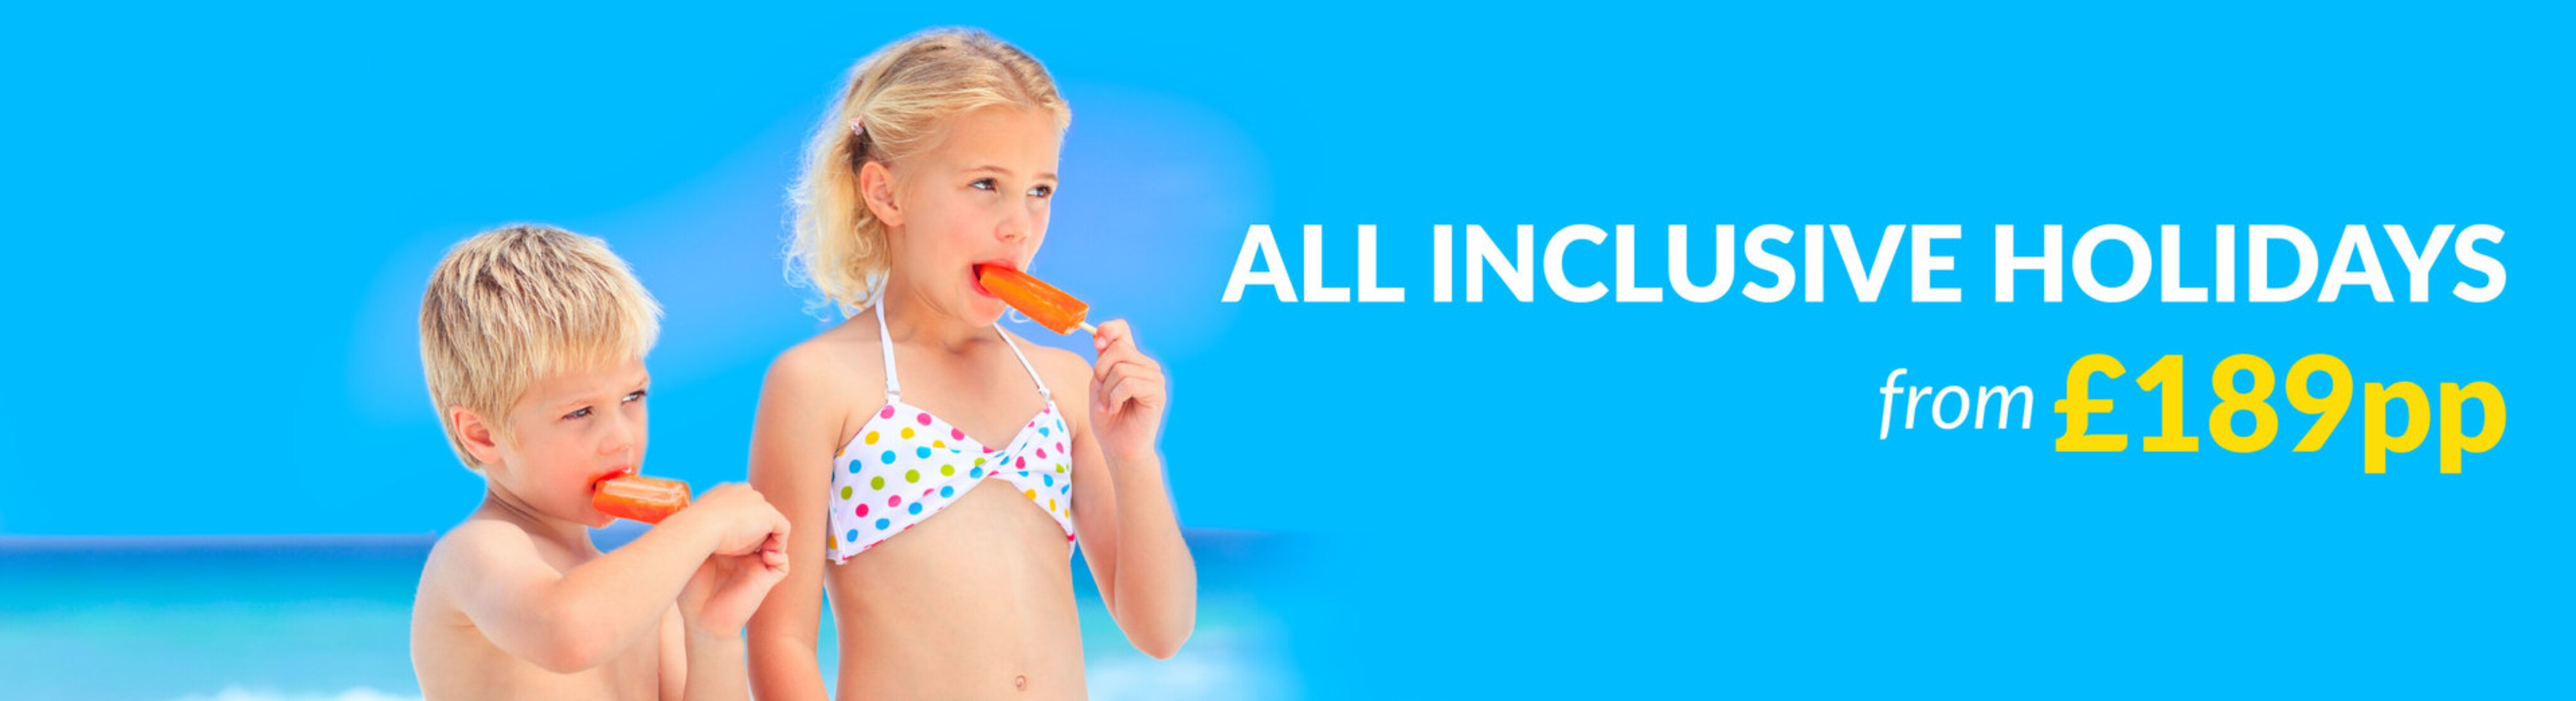 All inclusive holidays with On the Beach